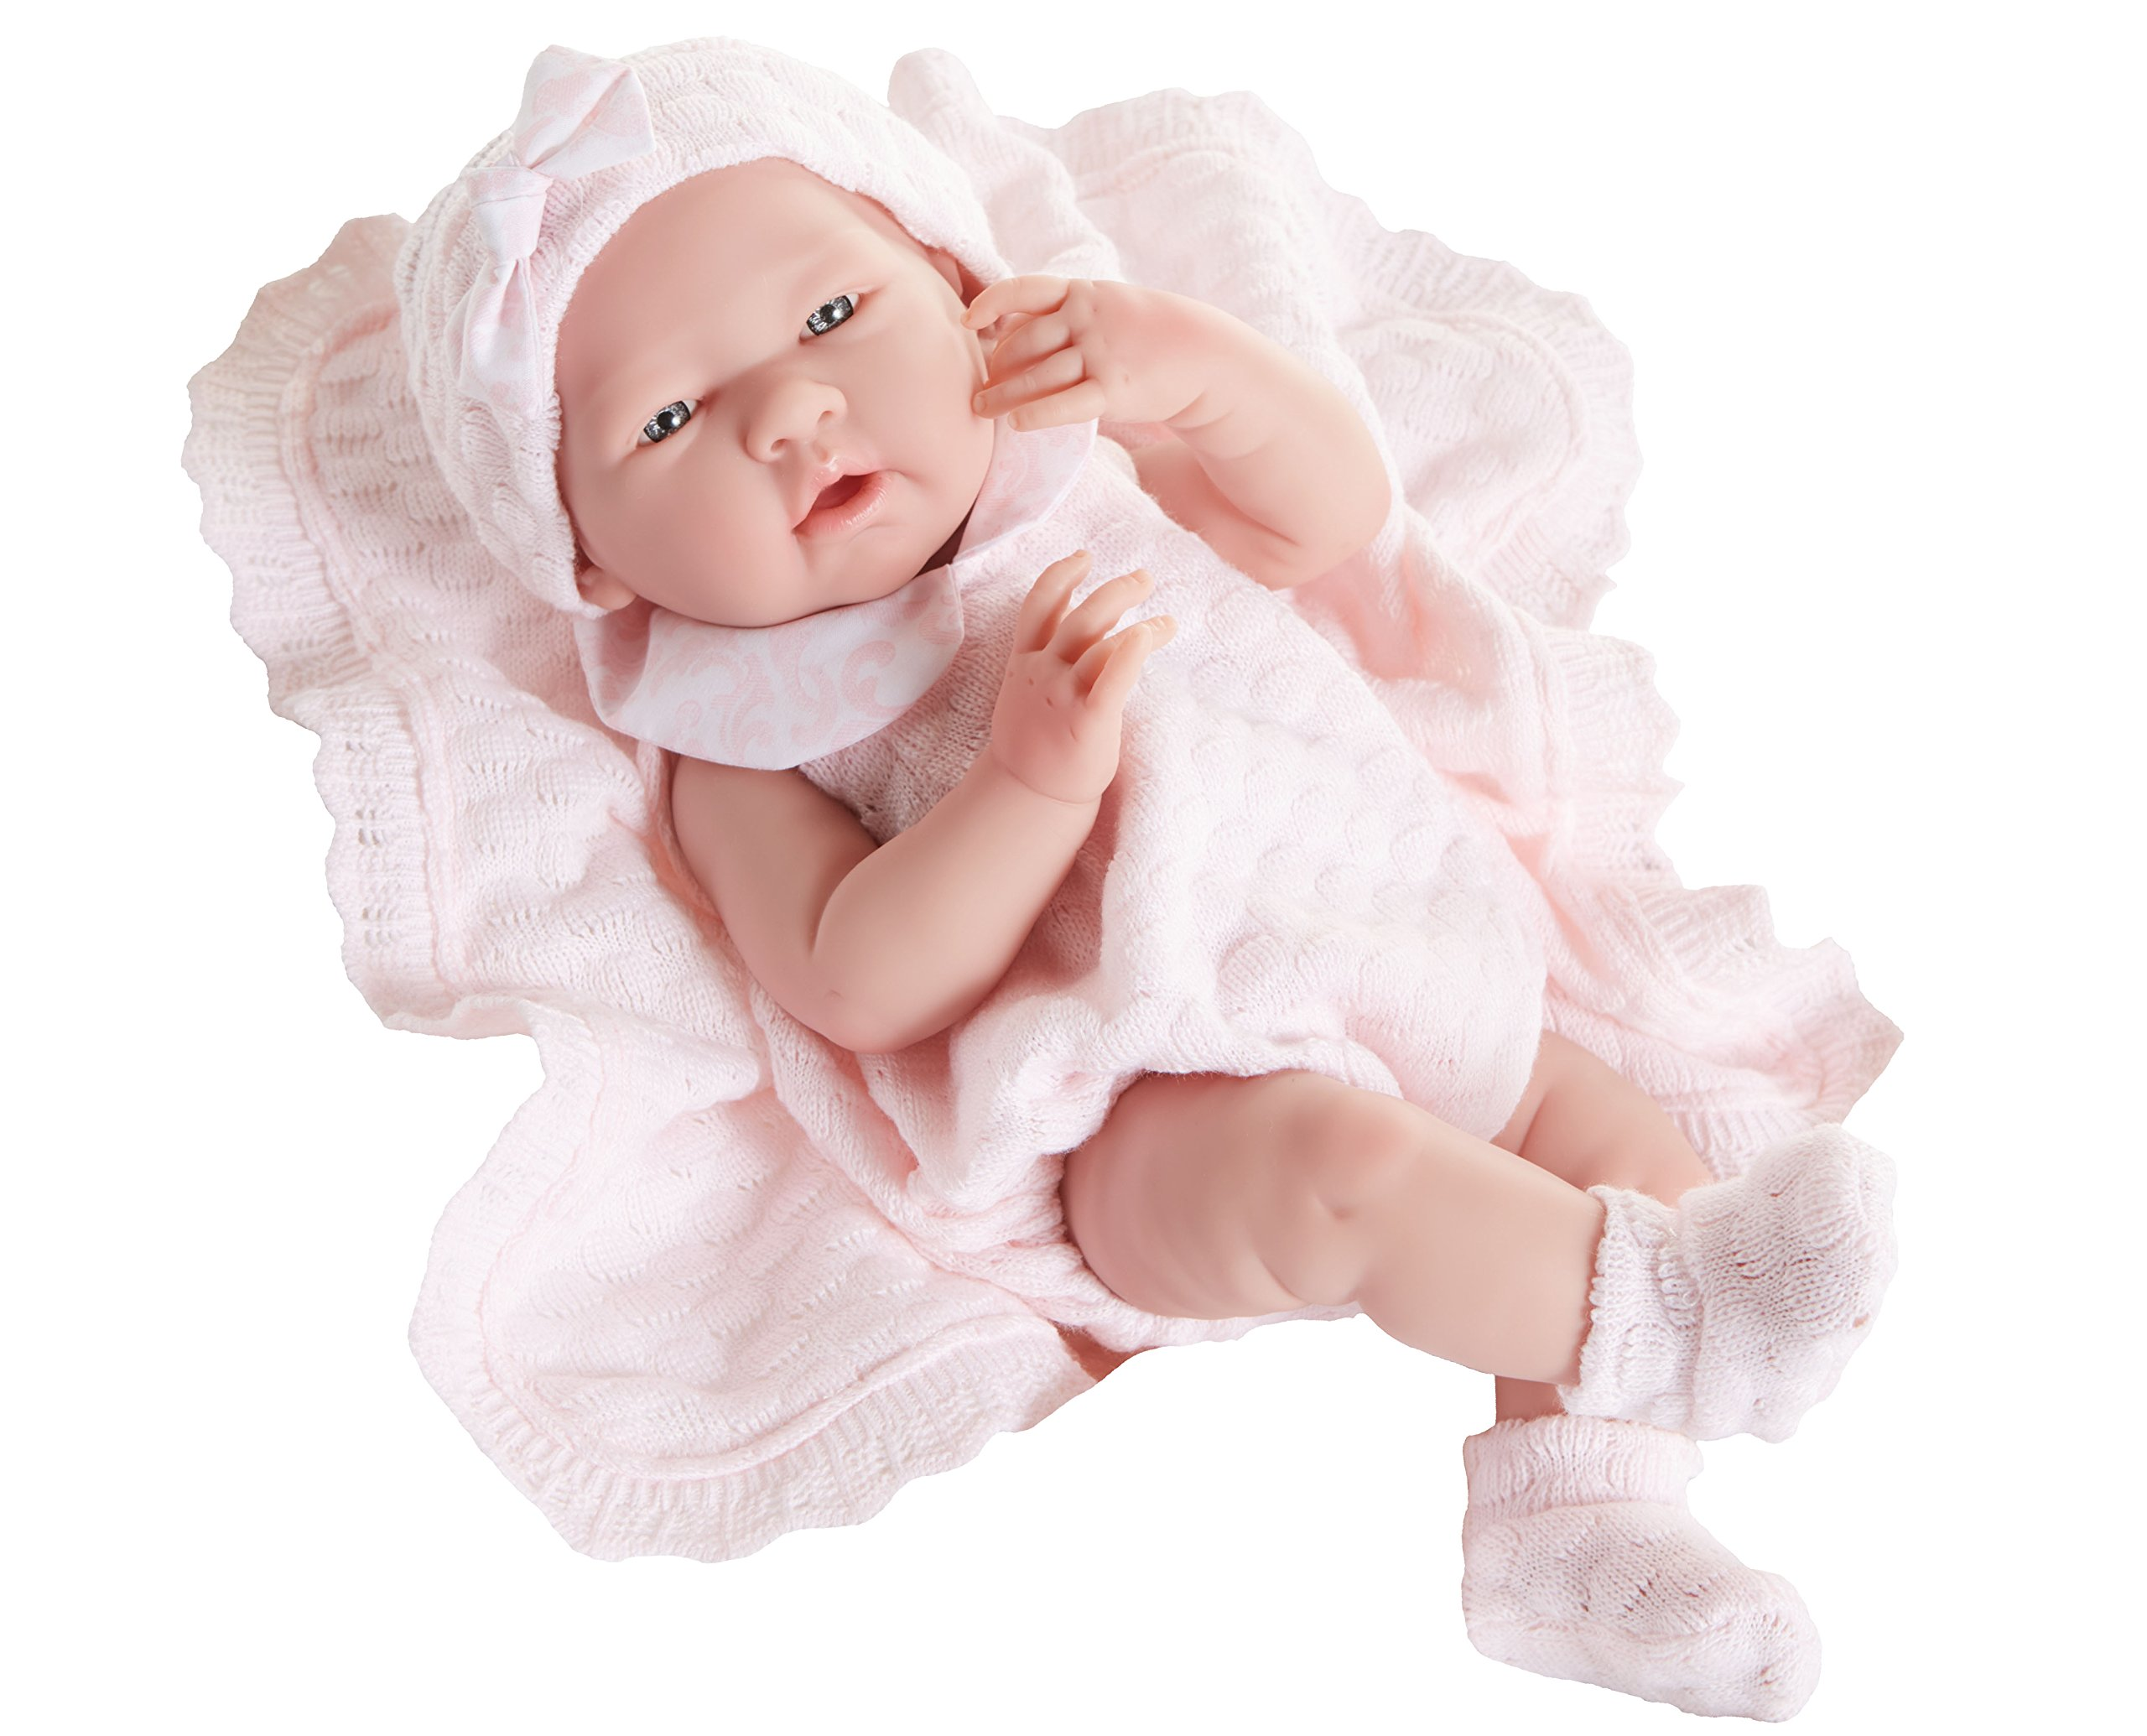 JC Toys La Newborn Pretty in Pink Knit Blanket Gift Set. Realistic 15'' Anatomically Correct Real Girl Baby Doll – All Vinyl Designed by Berenguer – Made in Spain